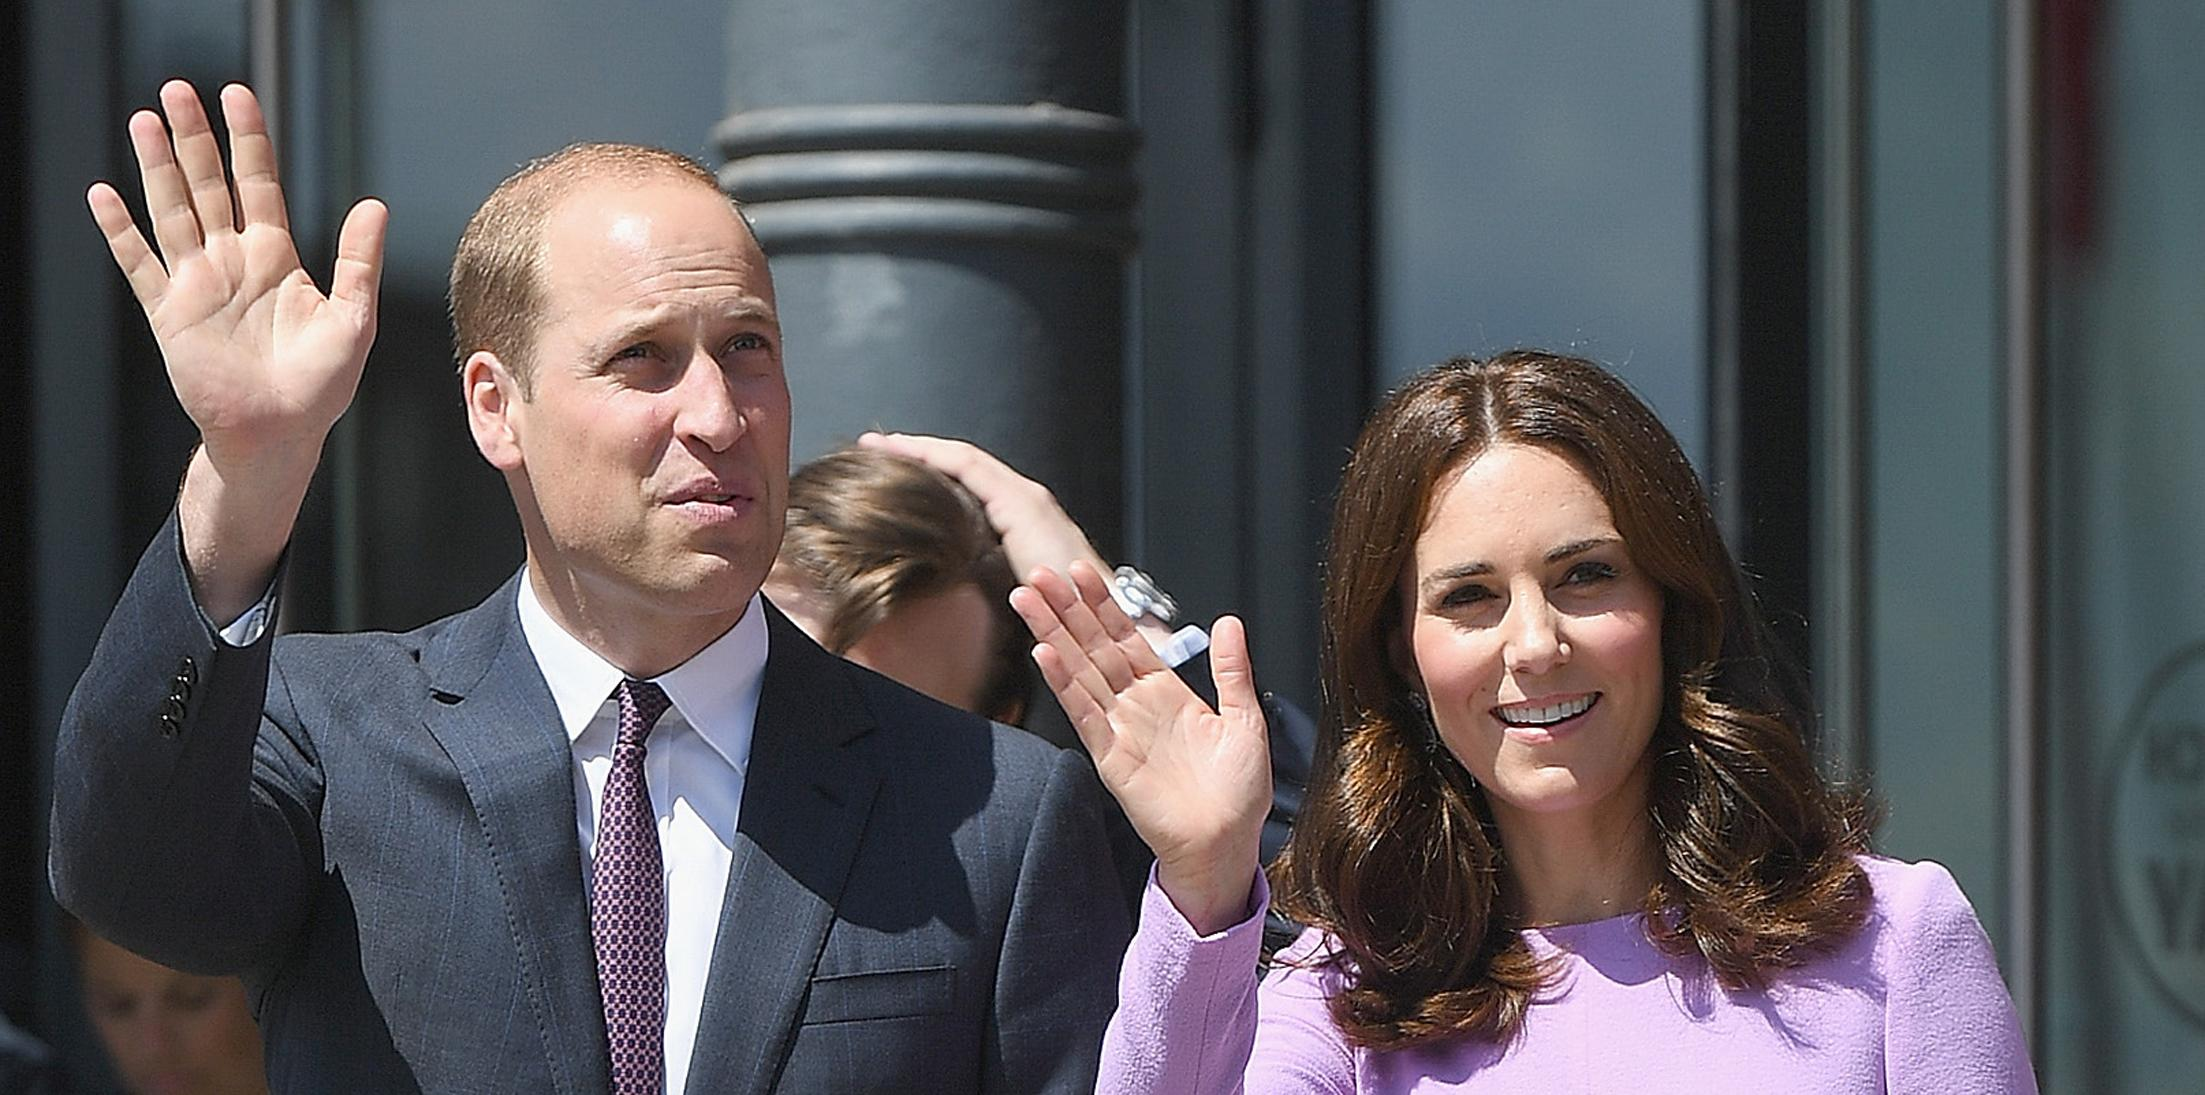 The Duke And Duchess Of Cambridge Visit Germany – Day 3